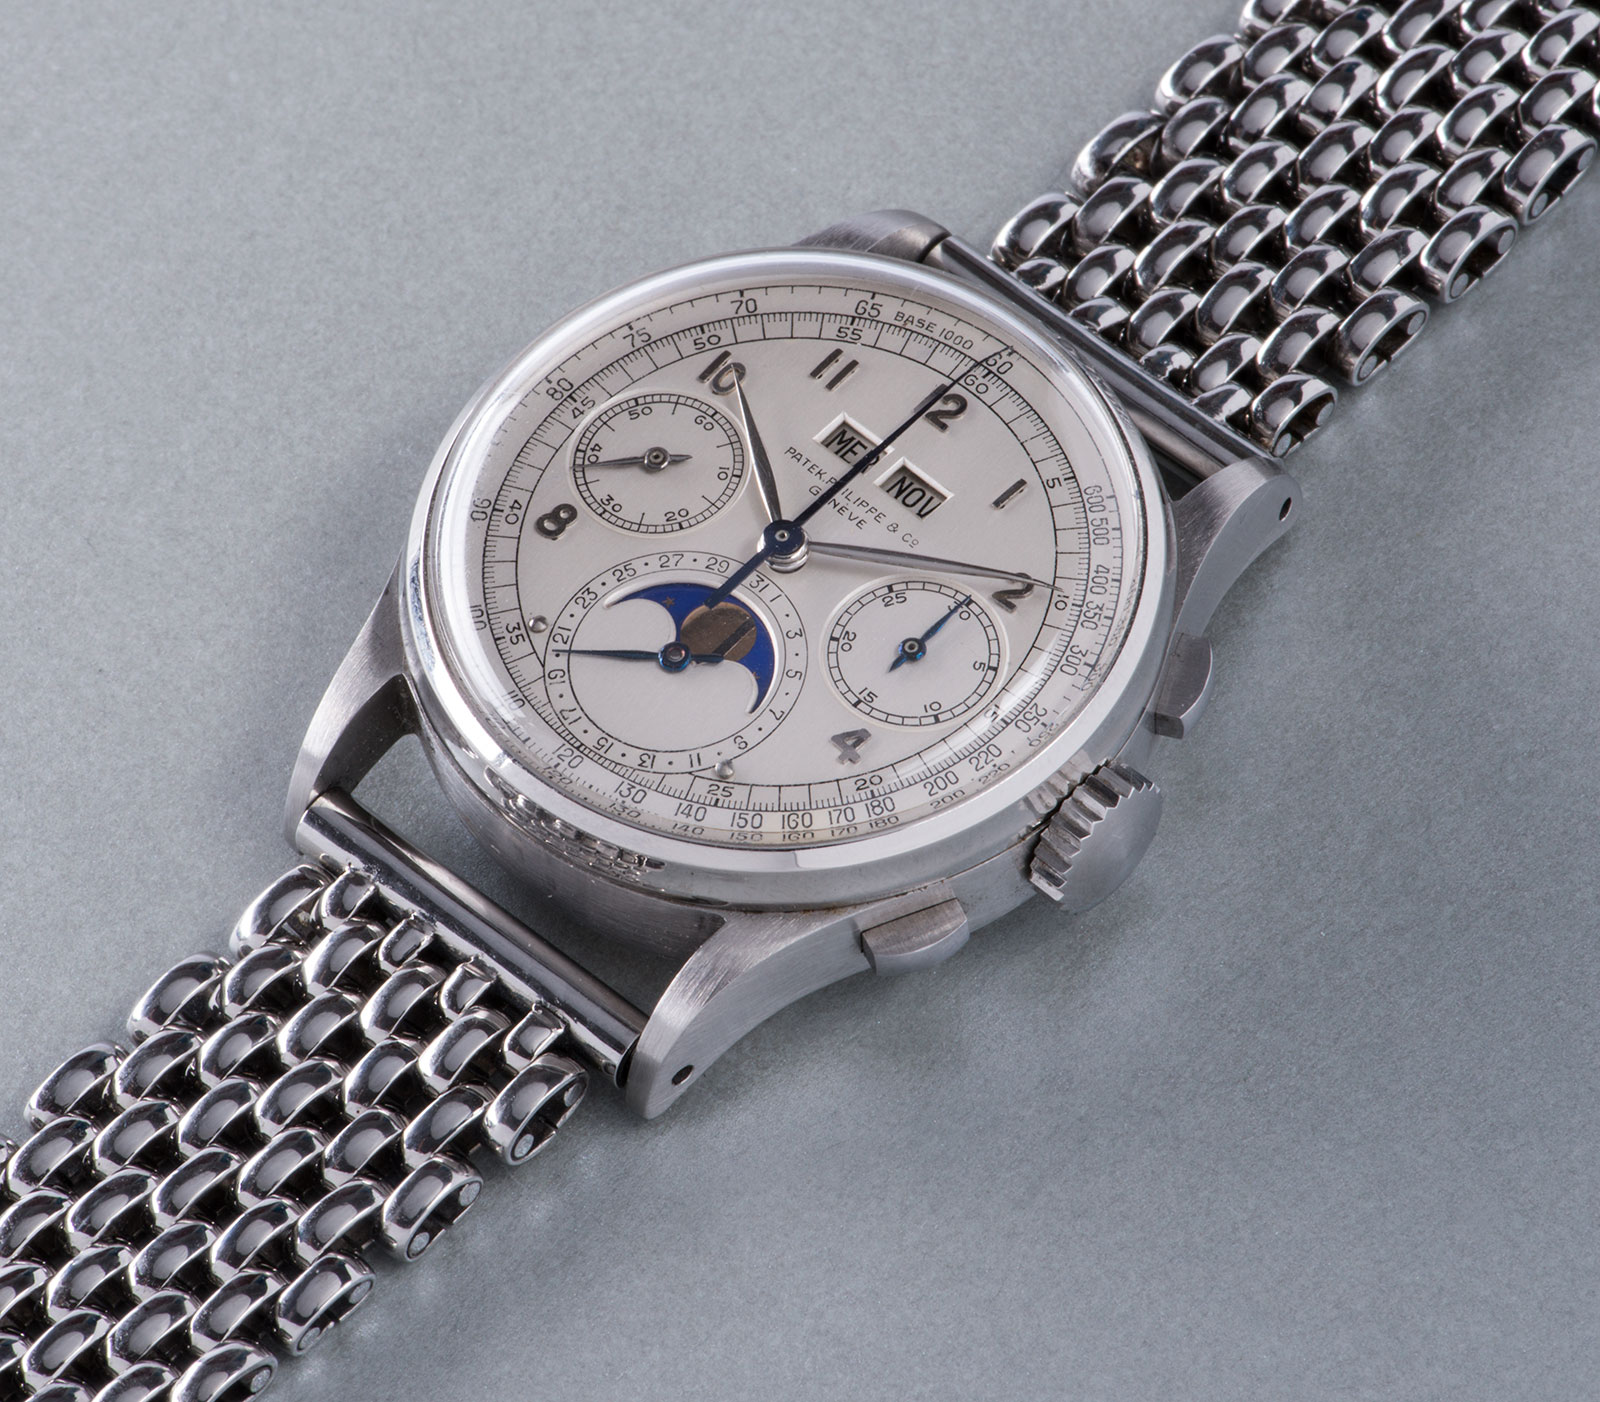 Phillips GWA4 Patek-Philippe-1518 steel